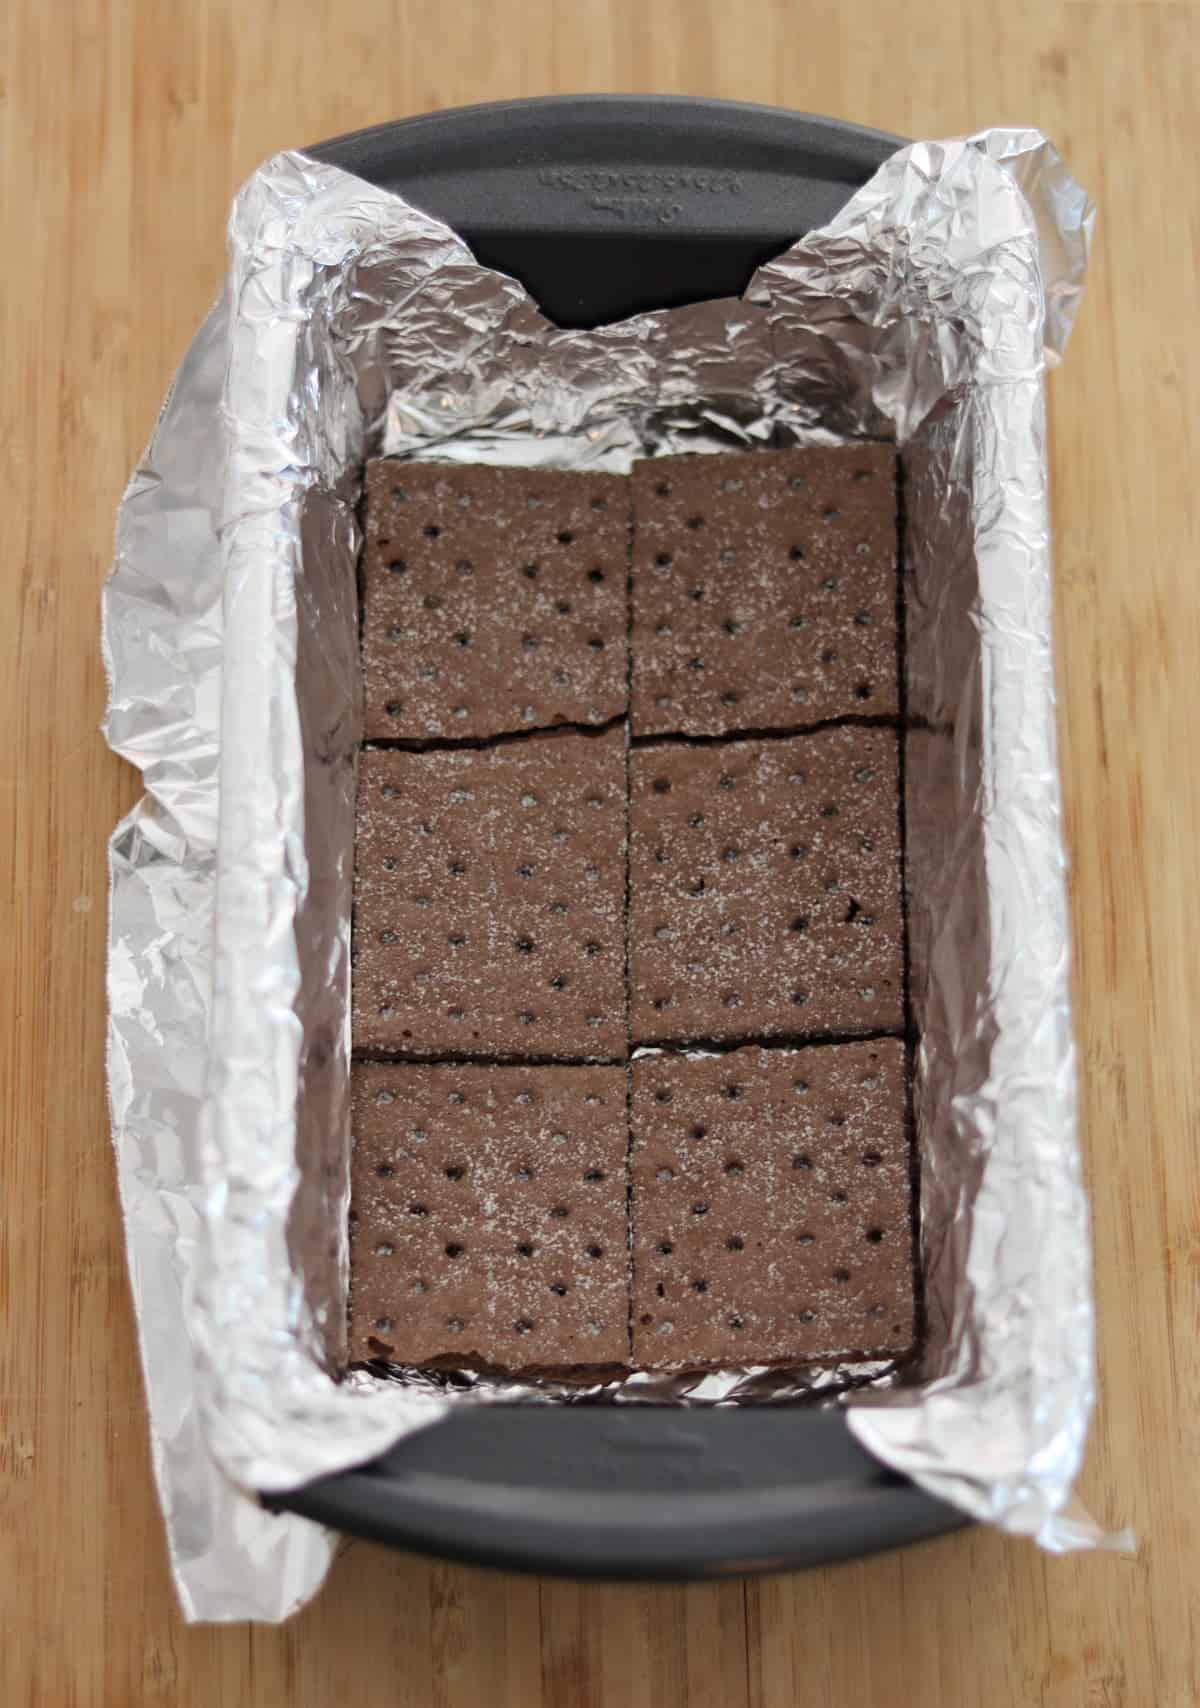 Foil lined loaf pan with layer of chocolate graham crackers.